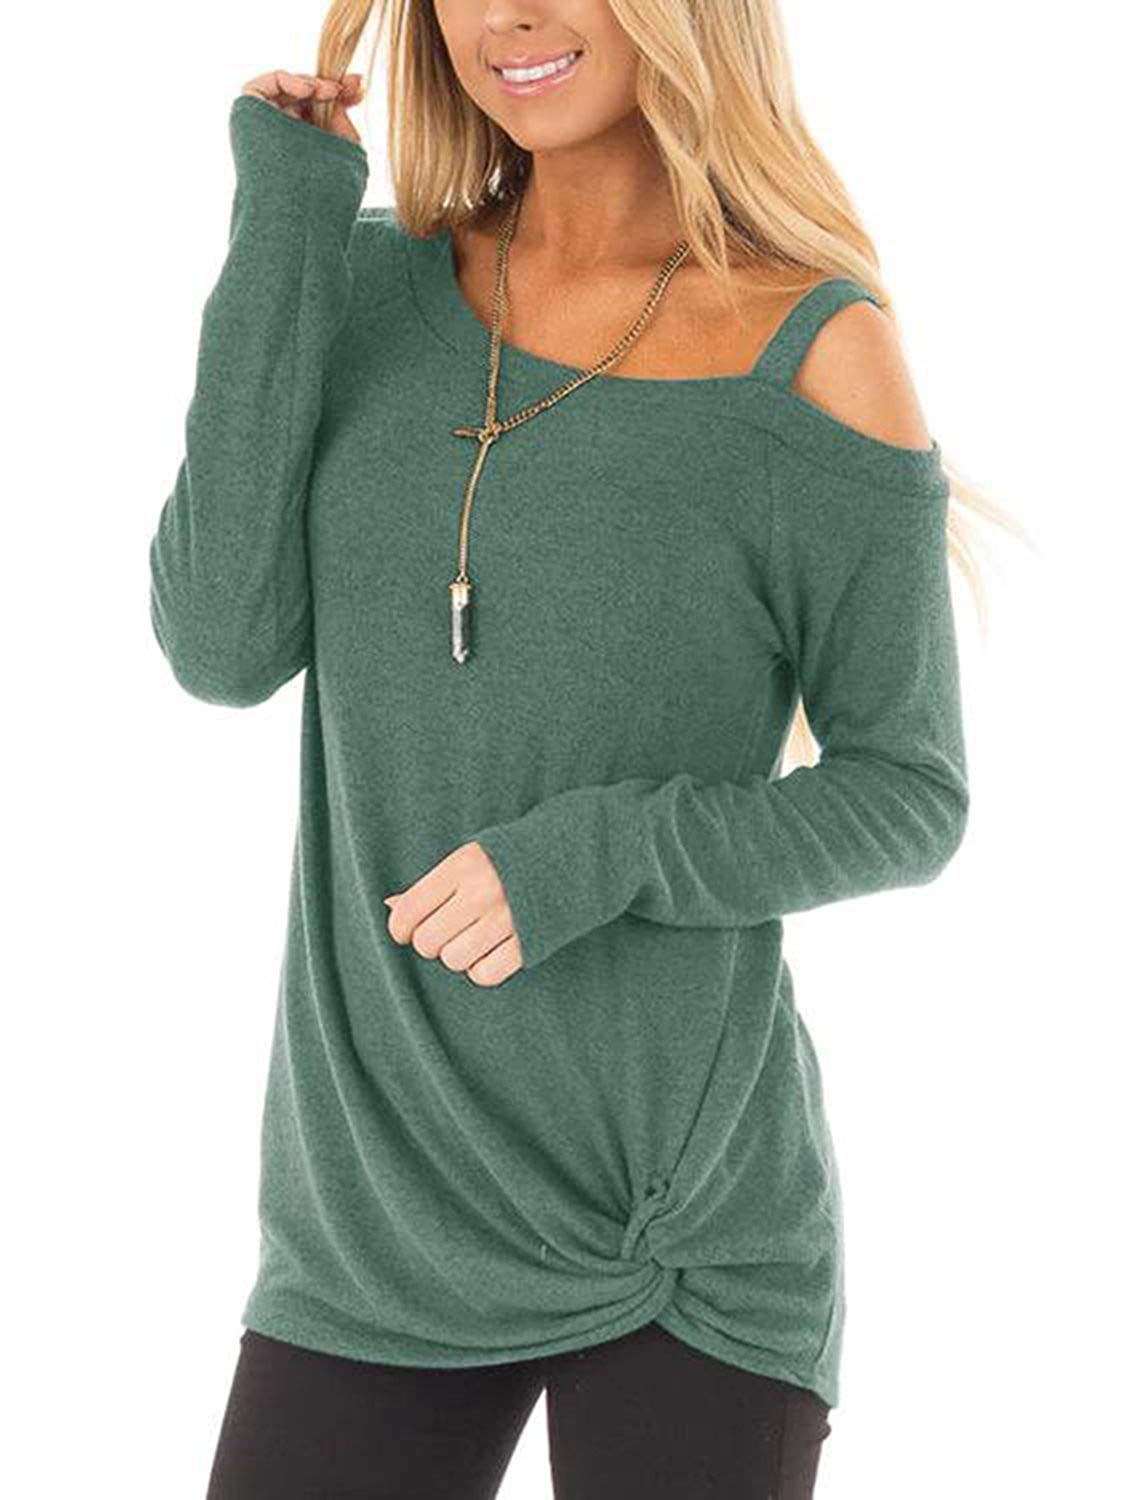 ANDUUNI Women's Loose Cold Shoulder T Shirt Casual Knot Front Long Sleeve Tunic Tops Blouse (Green, S) by ANDUUNI